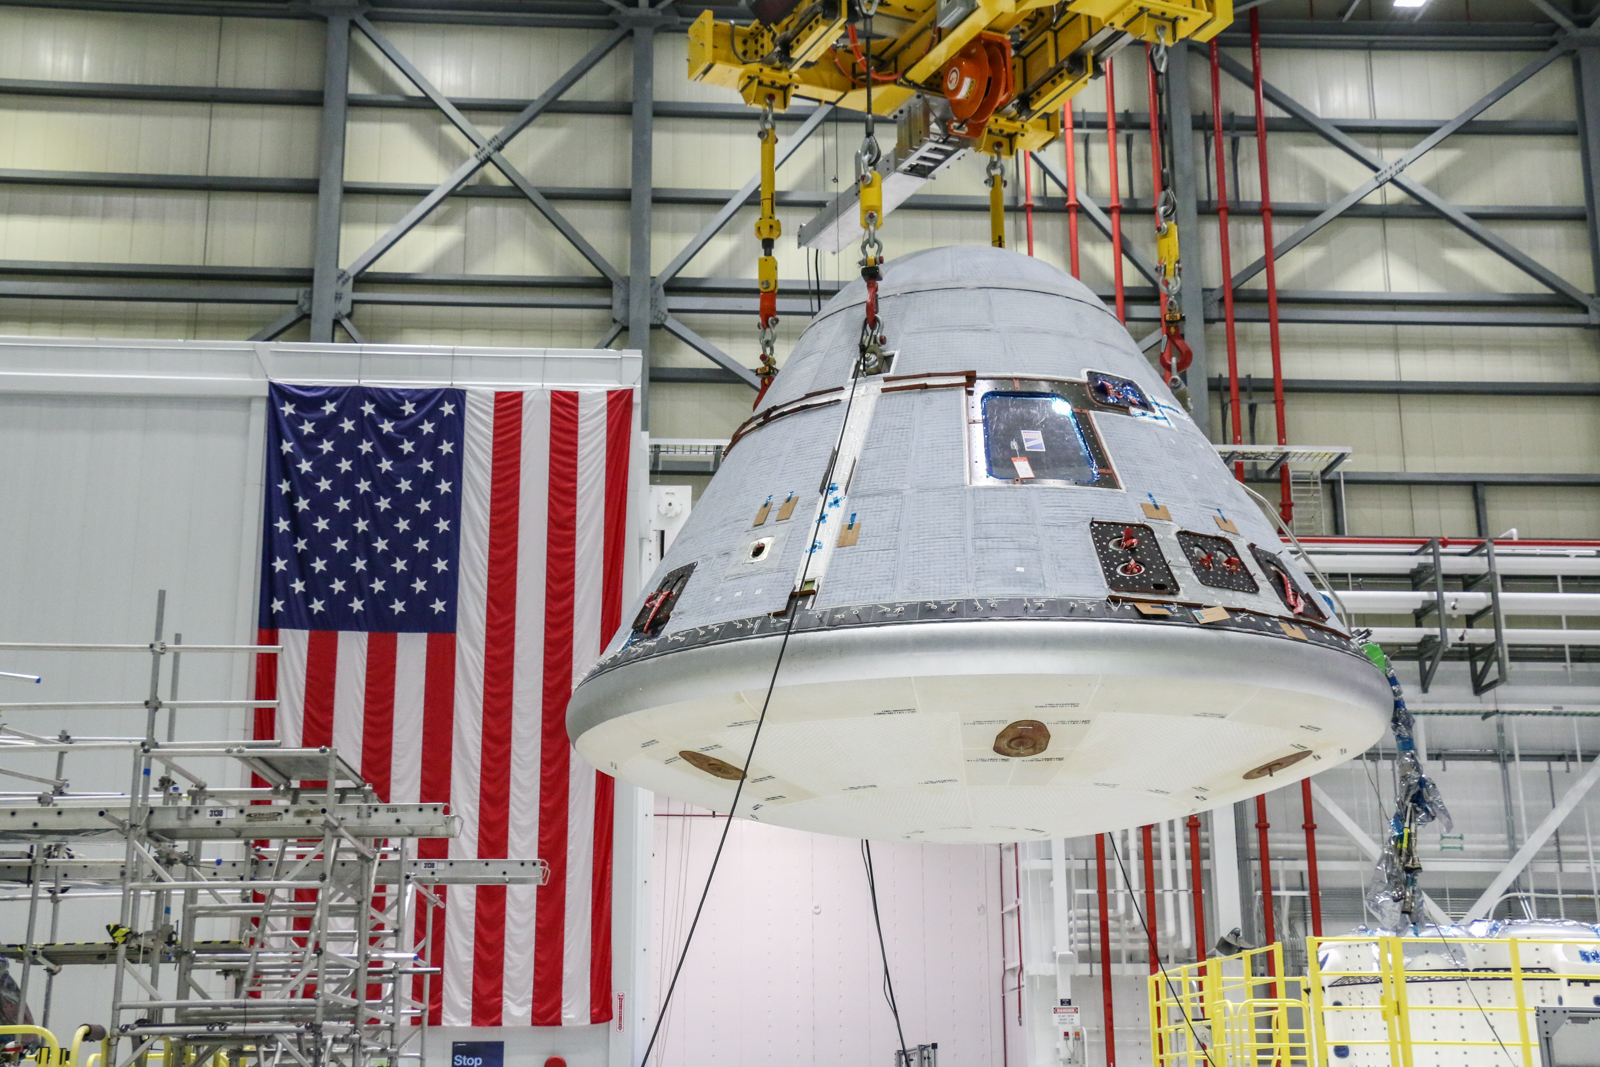 Boeing Starliner is lifted inside processing facility